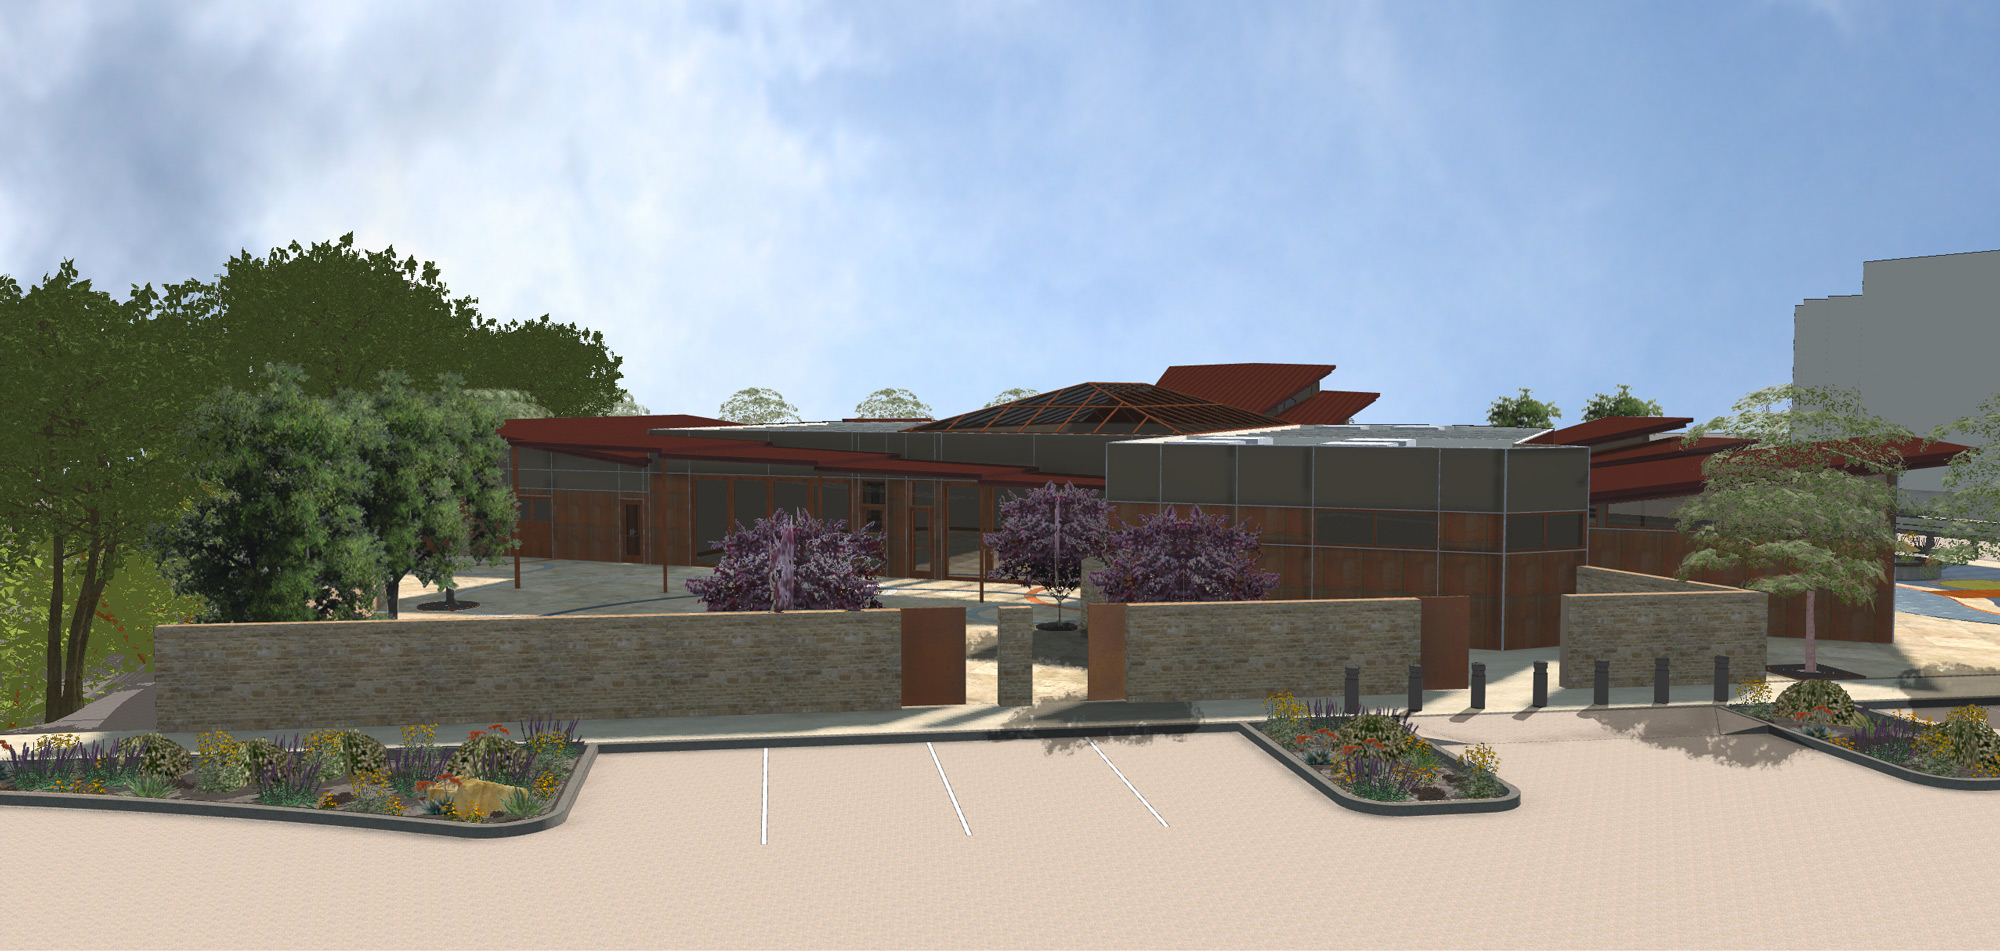 Grover Beach Conference Center Rendering CRSA